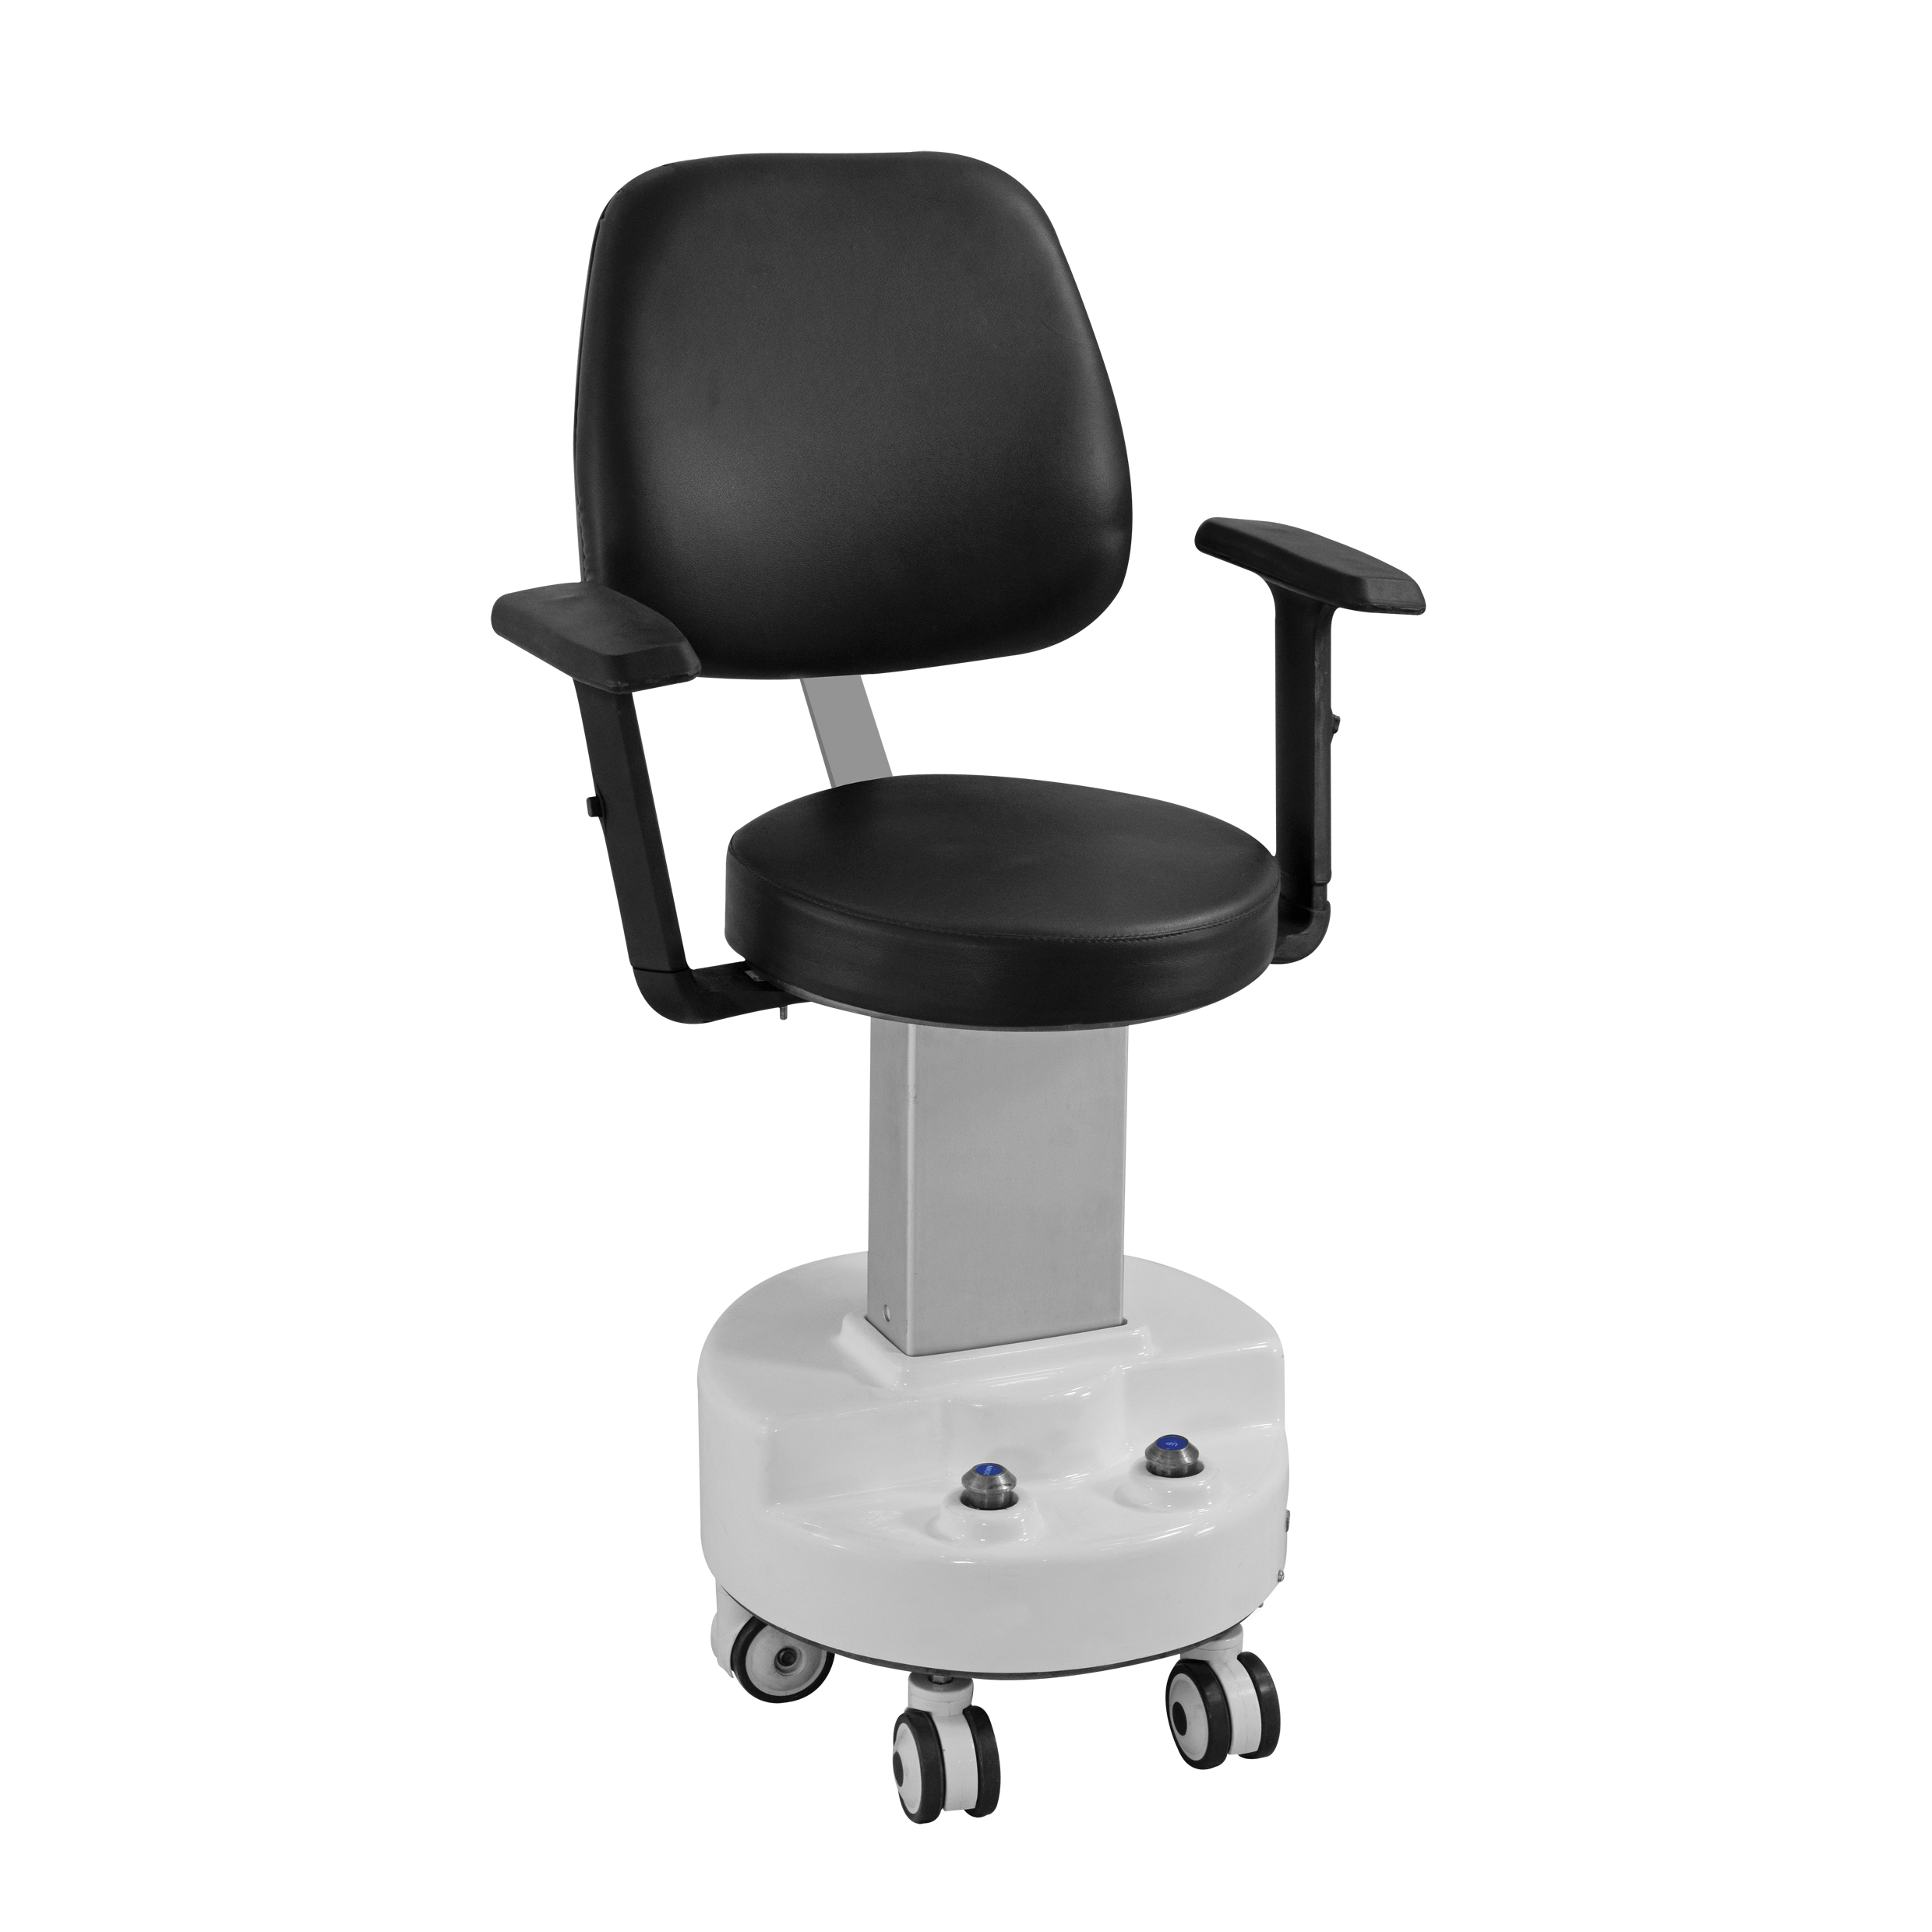 Surgeon Electric Chair, Surgeon Electric Stool, Surgical Surgeon Chair